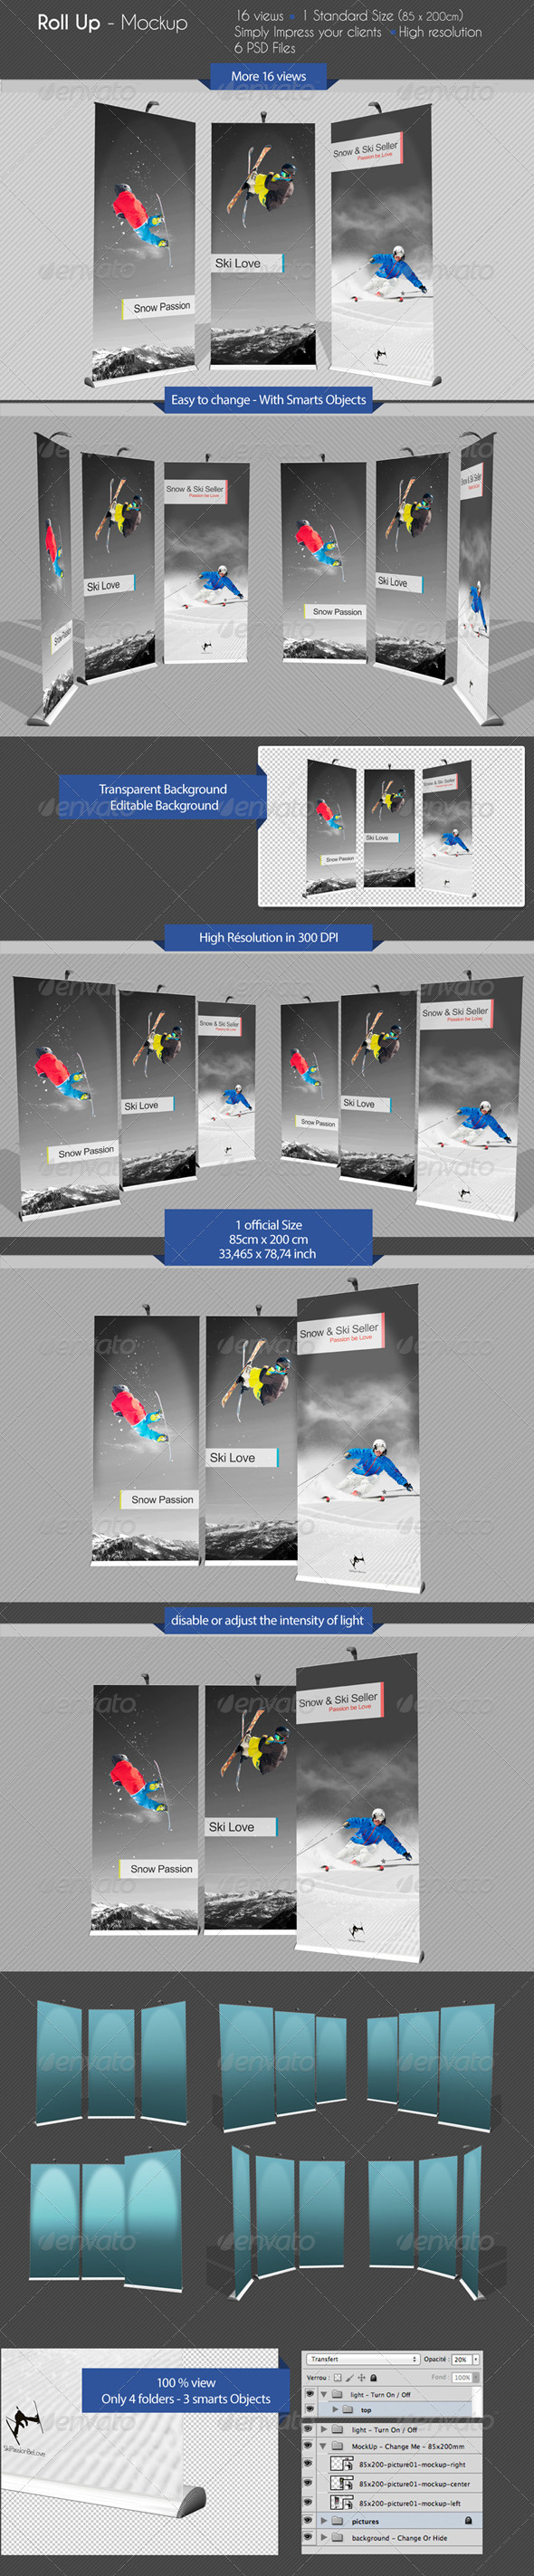 GraphicRiver Roll Up Mock-Ups 6793019